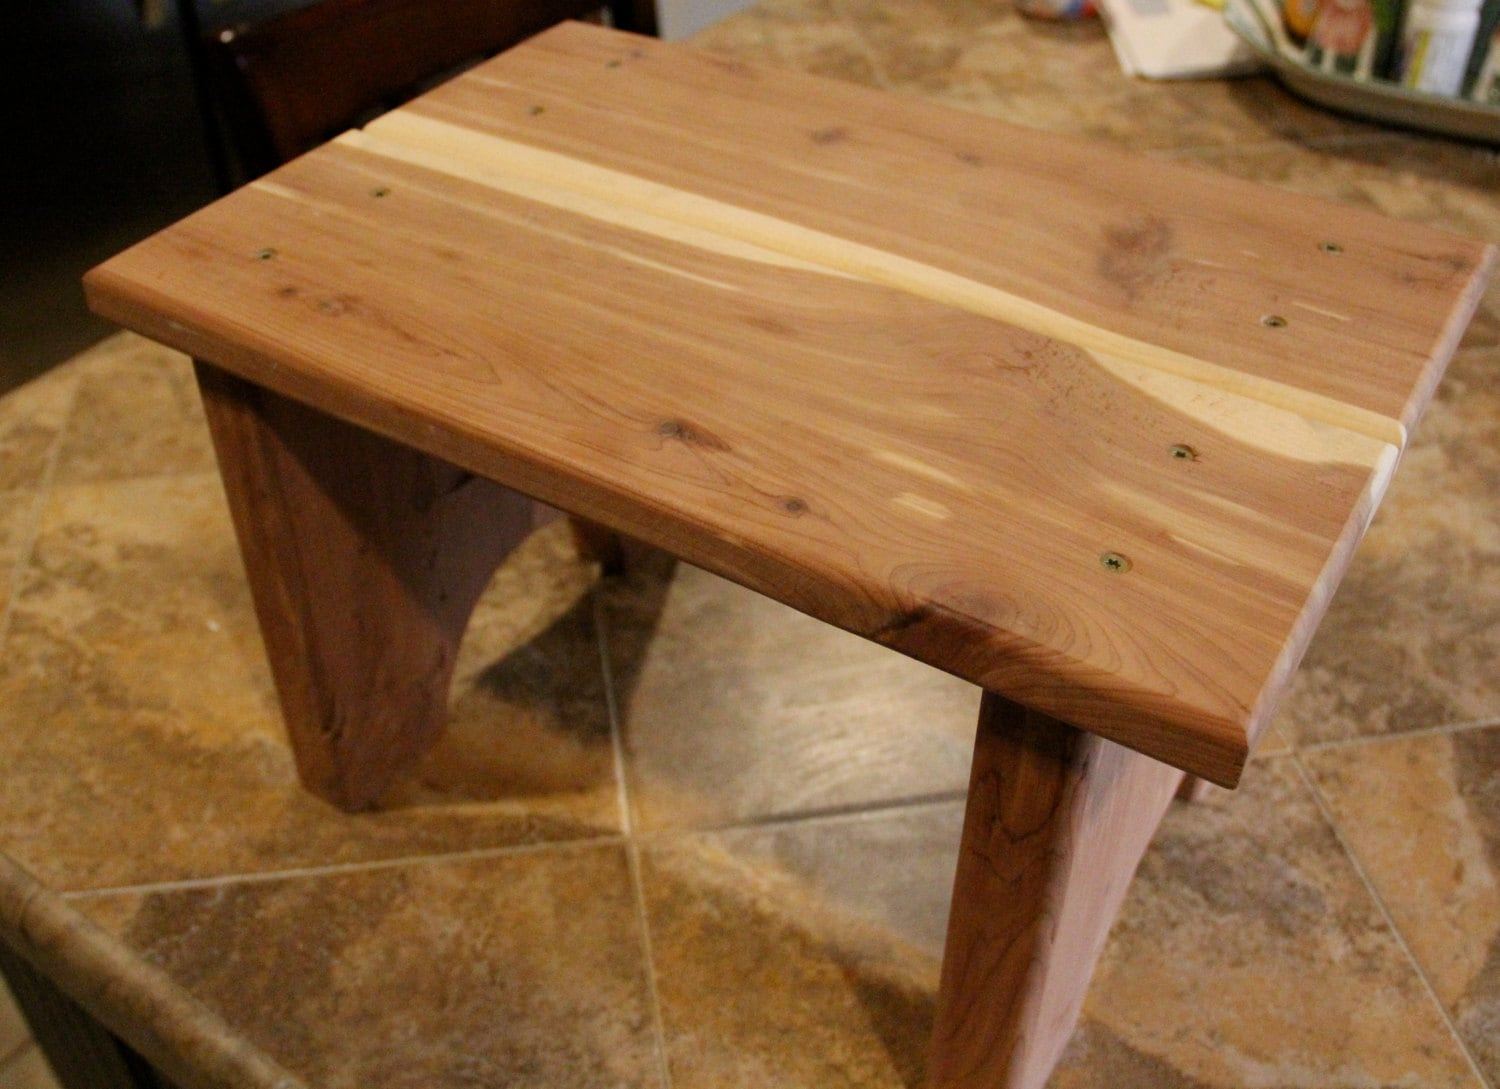 Step Stool Wooden Step Stool Kids Step Stool Kitchen Step